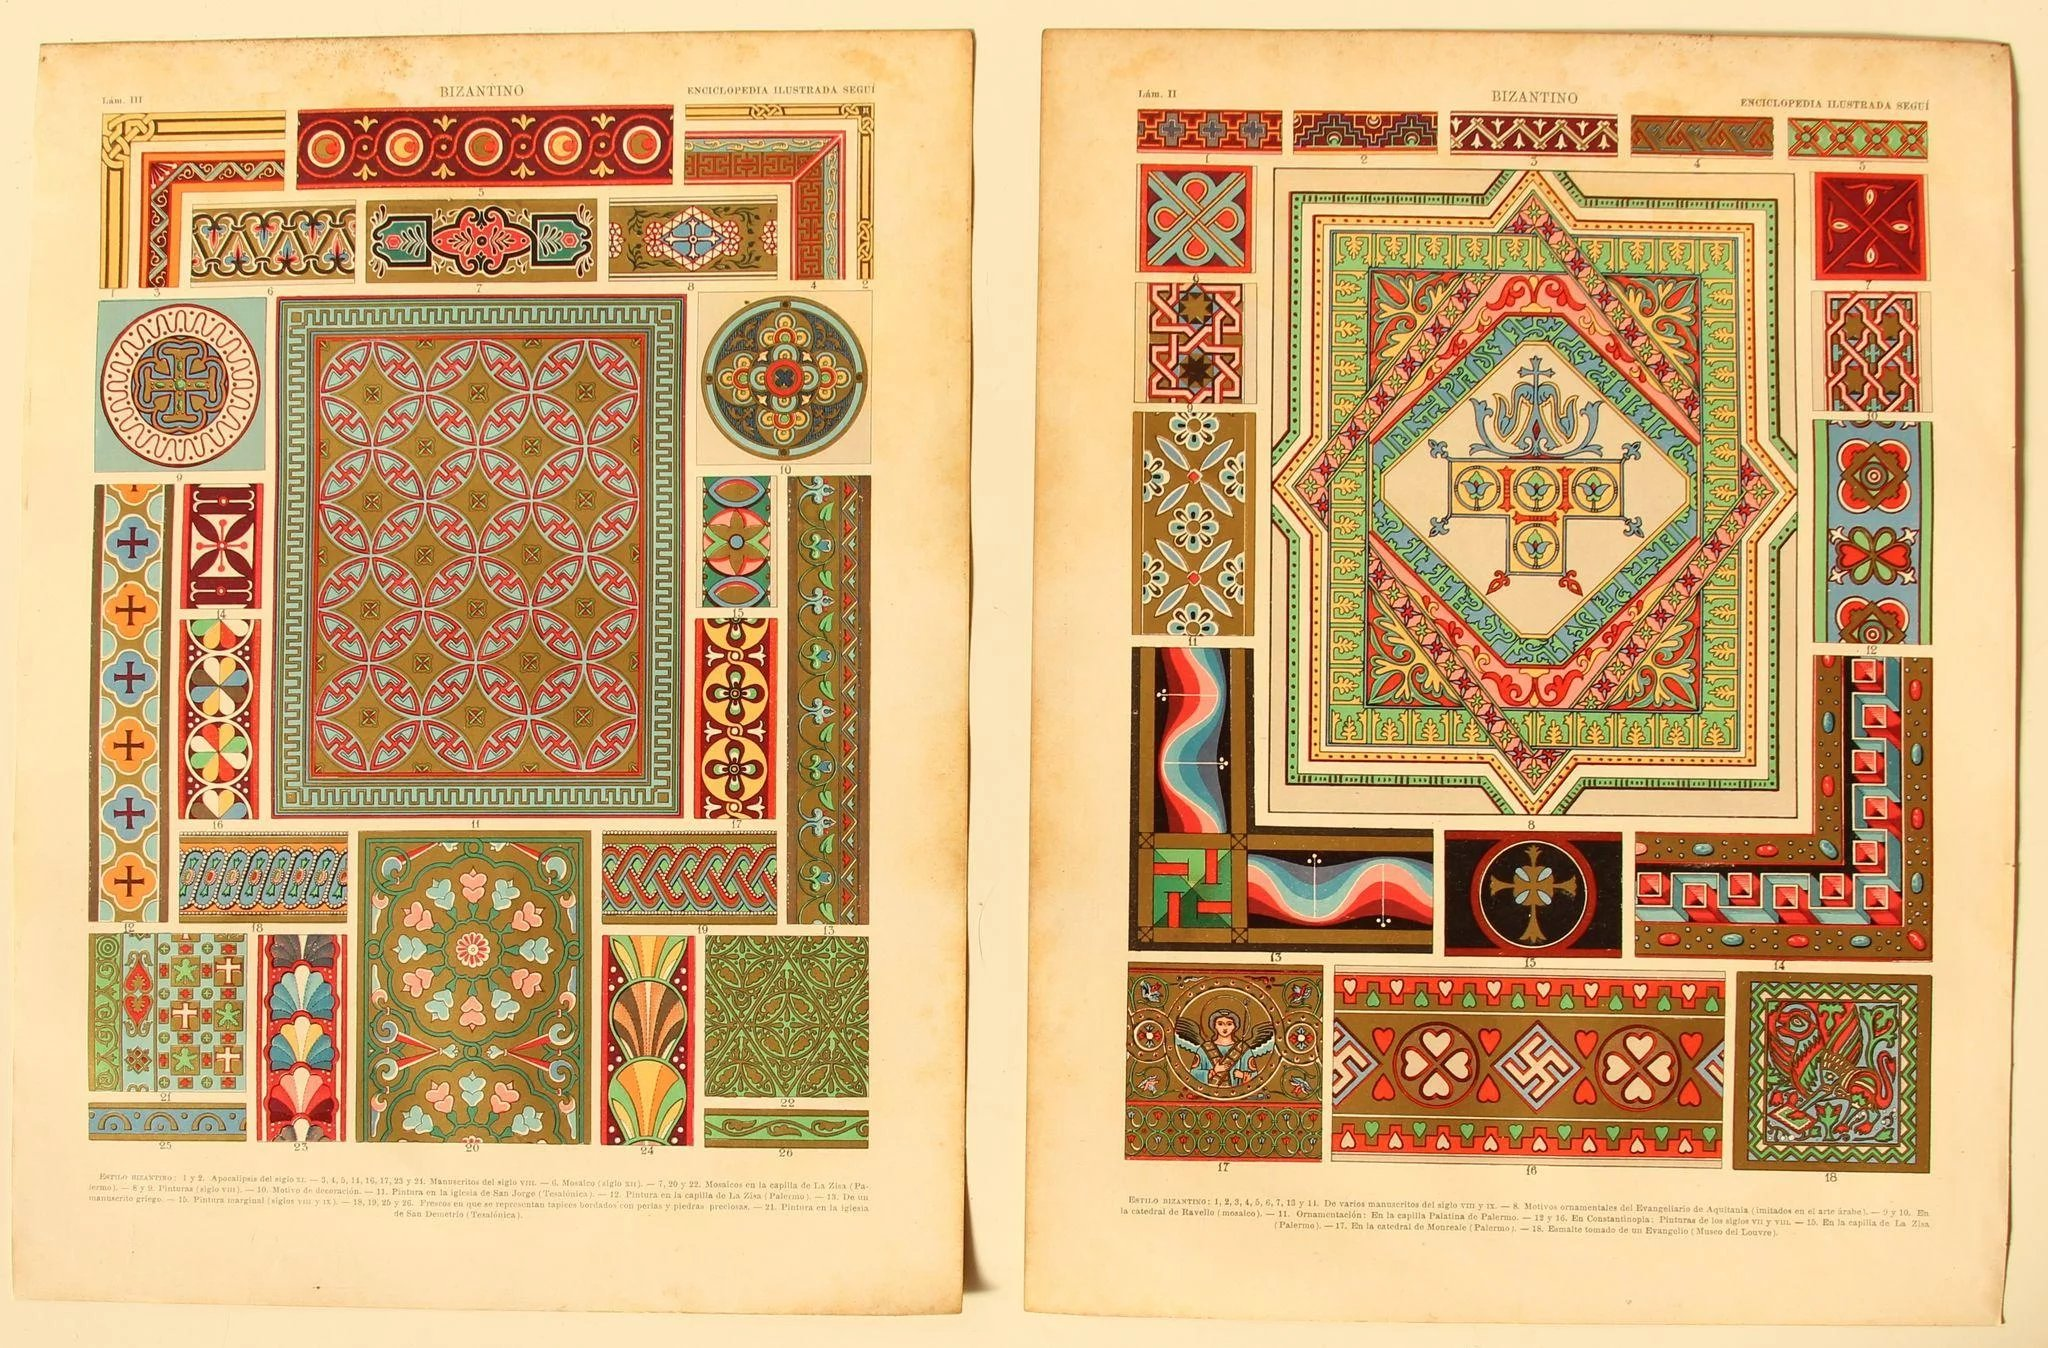 Art Nouveau Pintura Art Nouveau Set Of Two Prints Of Byzantine Patterns Architecture Art Objects 1900 S Polychrome Metallic Lithograph